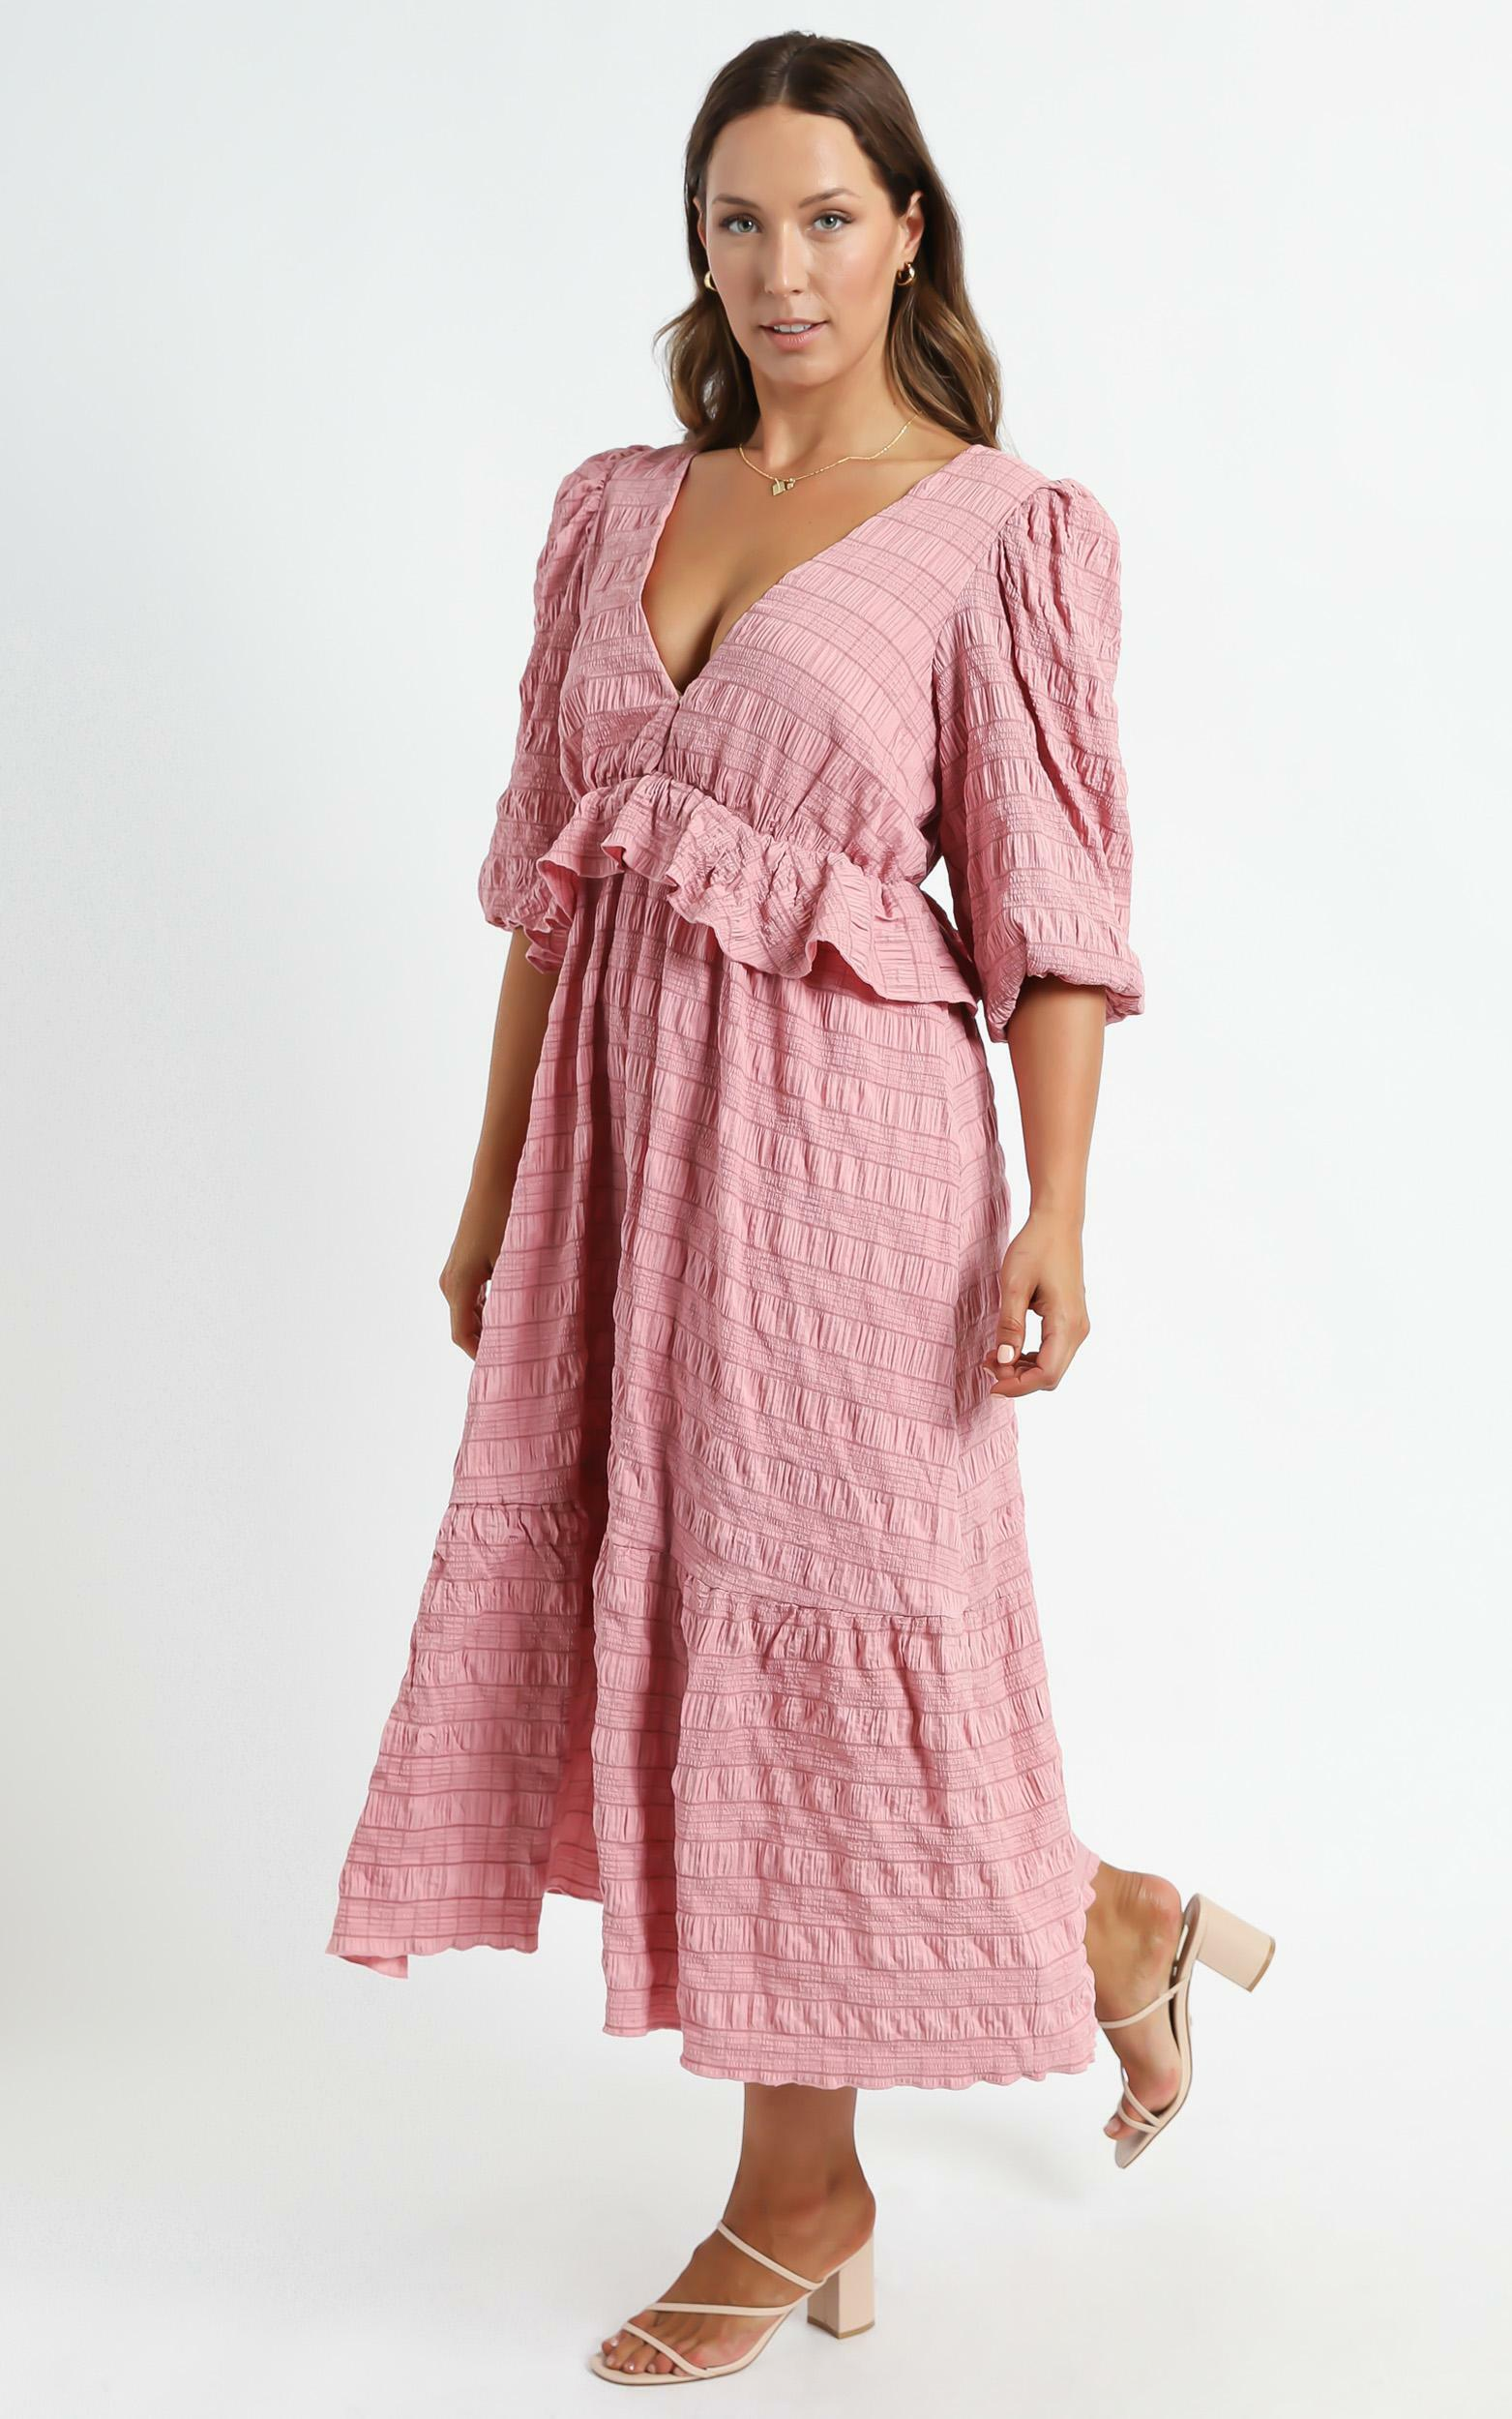 Addilyn Dress in Rose Check - 6 (XS), Pink, hi-res image number null